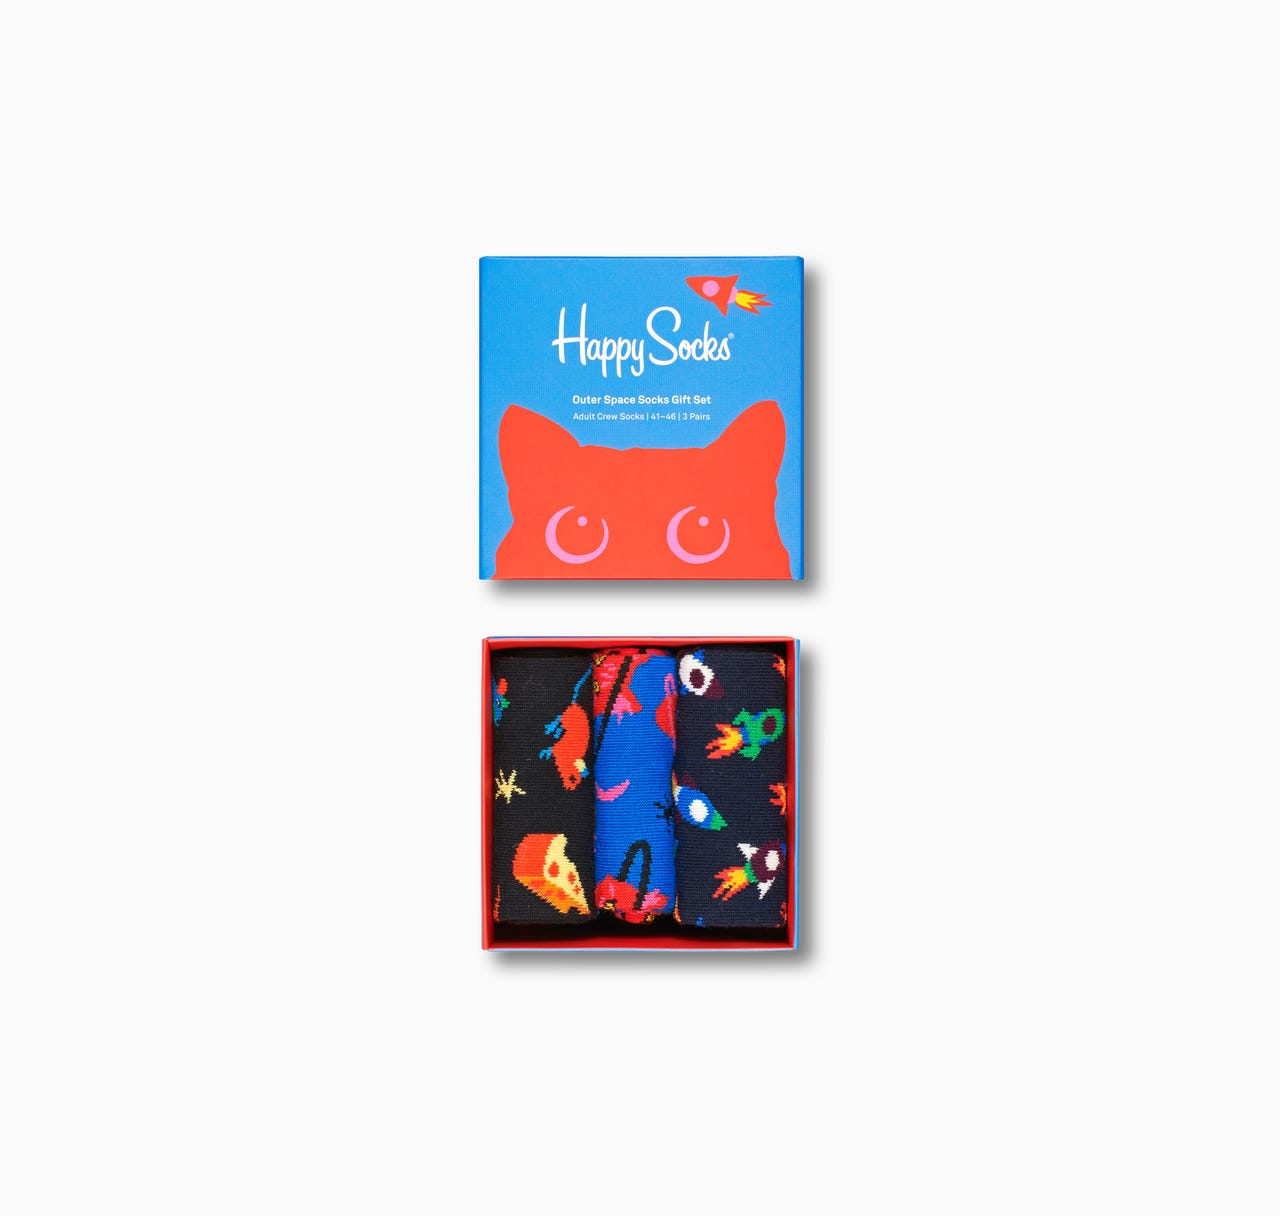 outer space gift set 41.46 HAPPY SOCKS | OUTER SPACE SOCKS GIFT SET9300